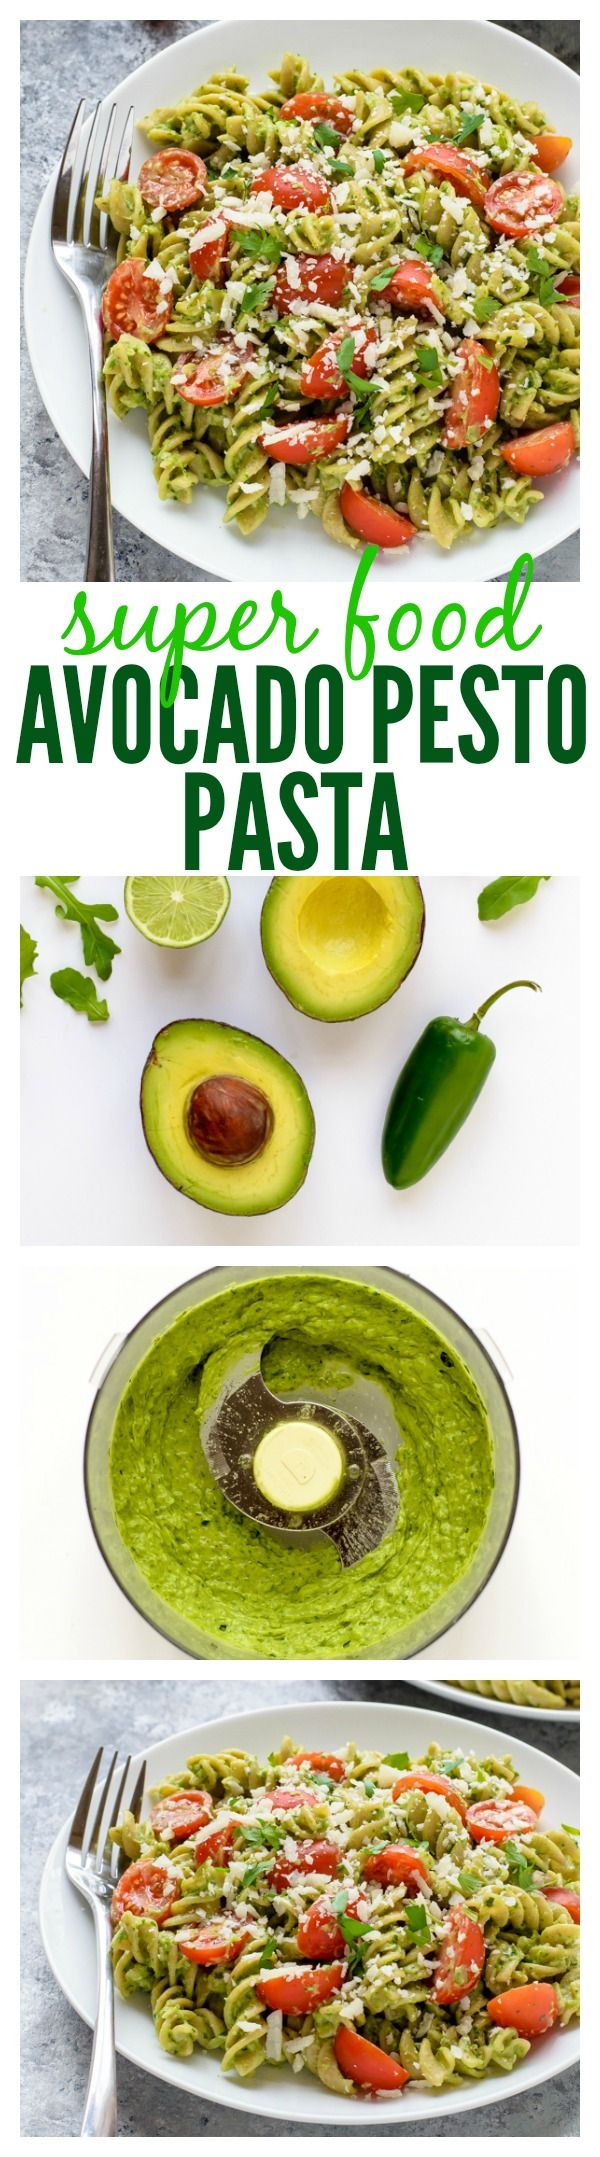 ~~15 Minute Super Food Avocado Pesto Pasta | Luxuriously creamy, lightly spiced, and packed with super foods avocado and arugula, this velvety green wonder sauce comes together in minutes and is lovely on everything from sandwiches to toast to pasta. | Well Plated~~